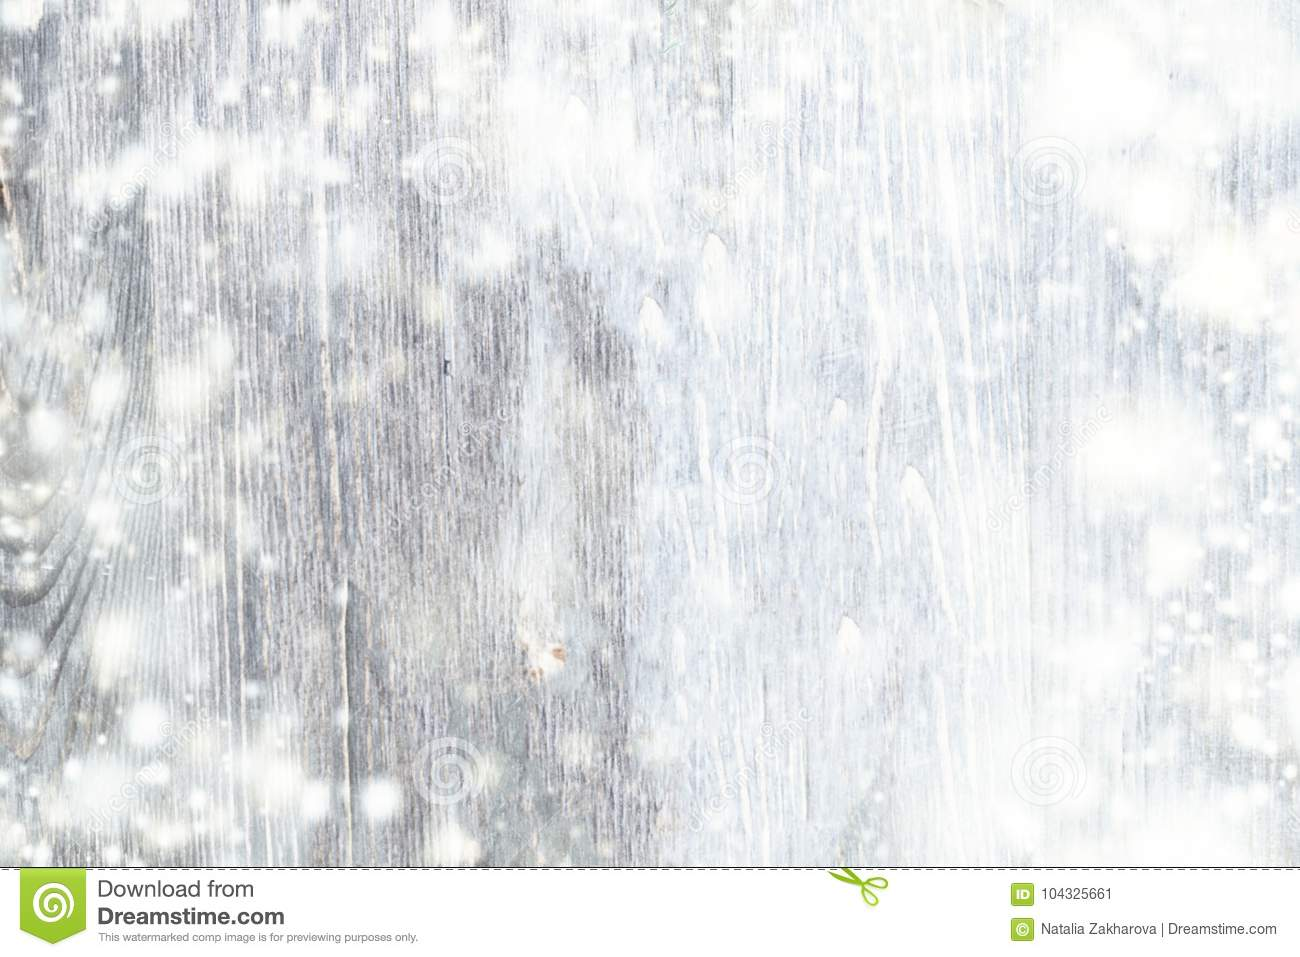 Abstract Snow Background with wooden texture and falling snowflakes. Christmas Card with copy space.